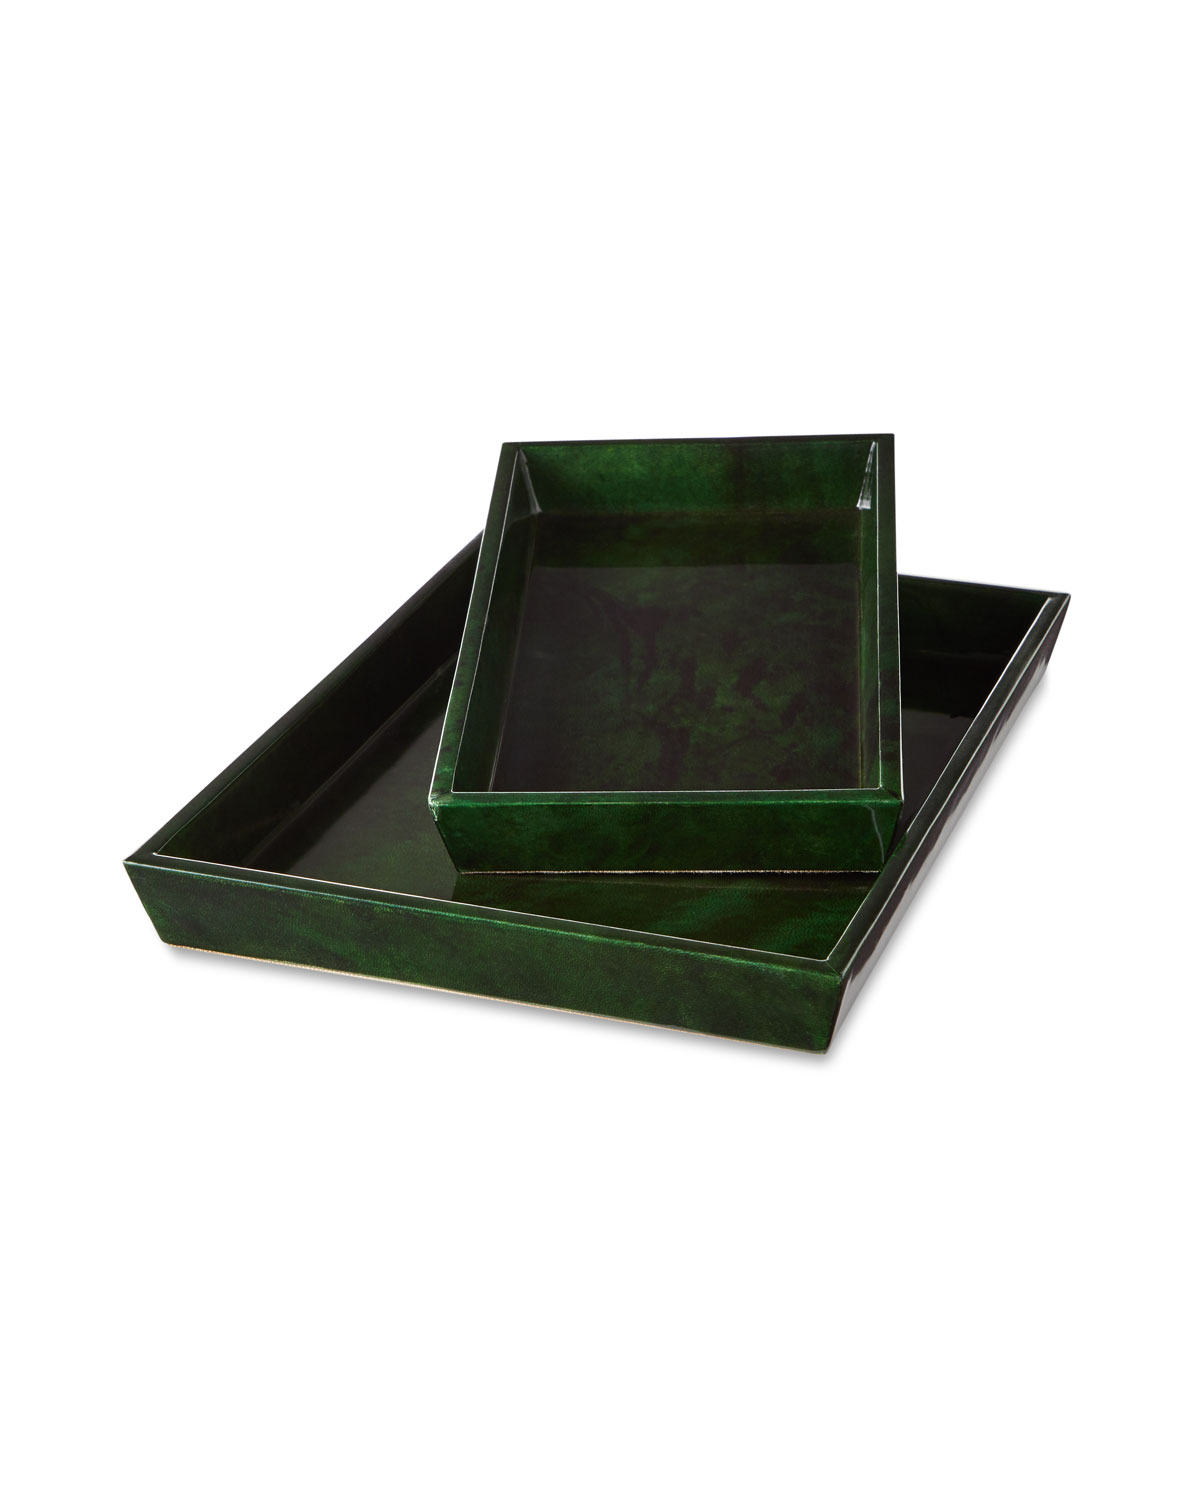 Pigeon and Poodle Carlow Nested Trays, Set of 2